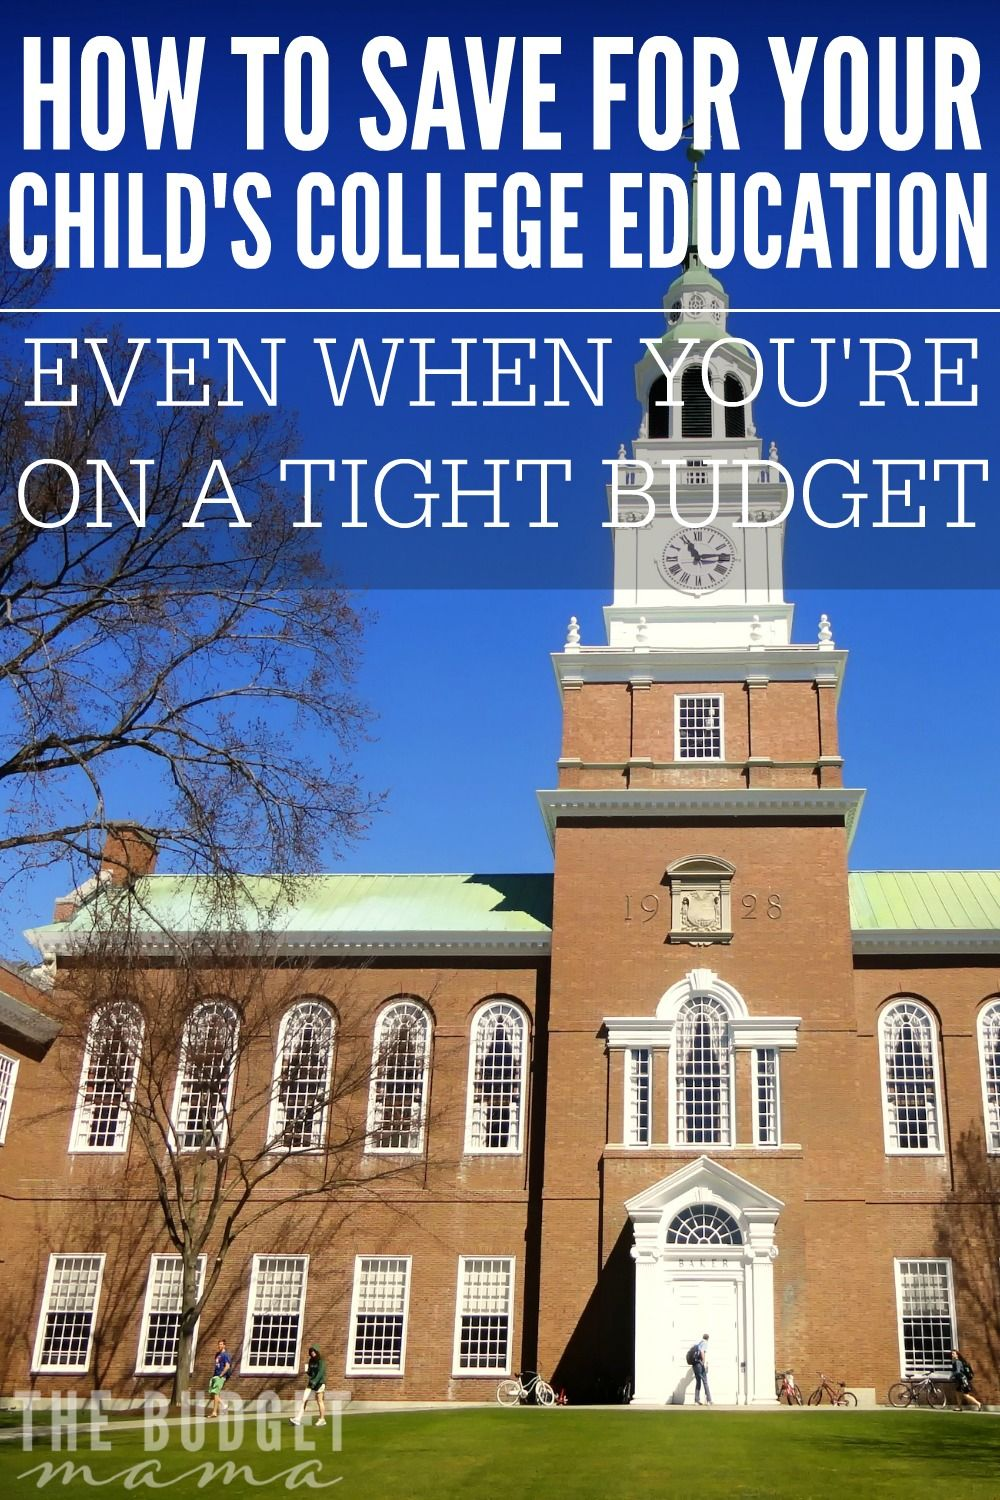 How to send your child to college on a budget